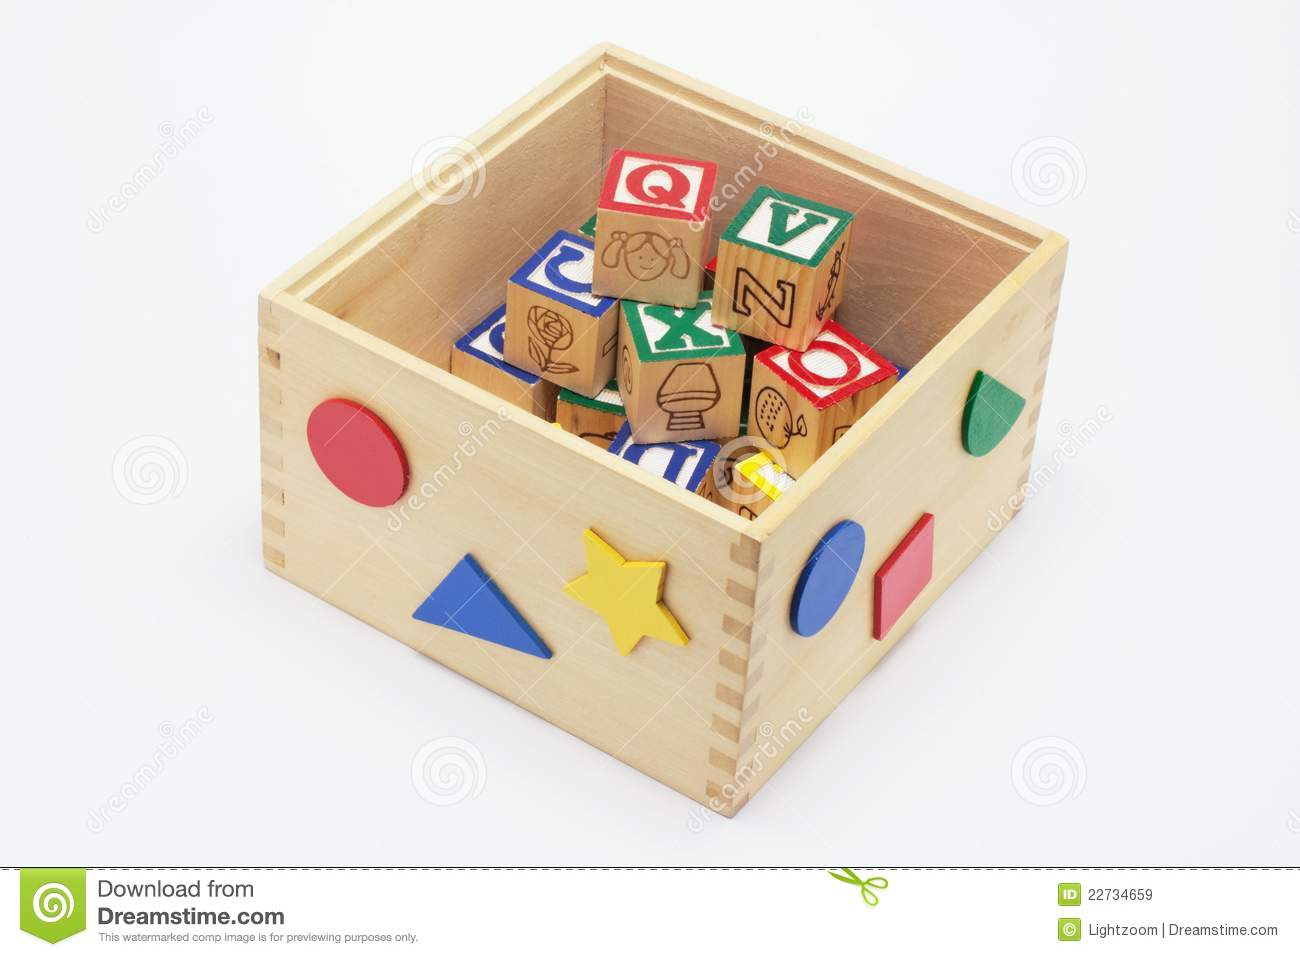 Alphabet Blocks In Toy Box Royalty Free Stock Images - Image: 22734659